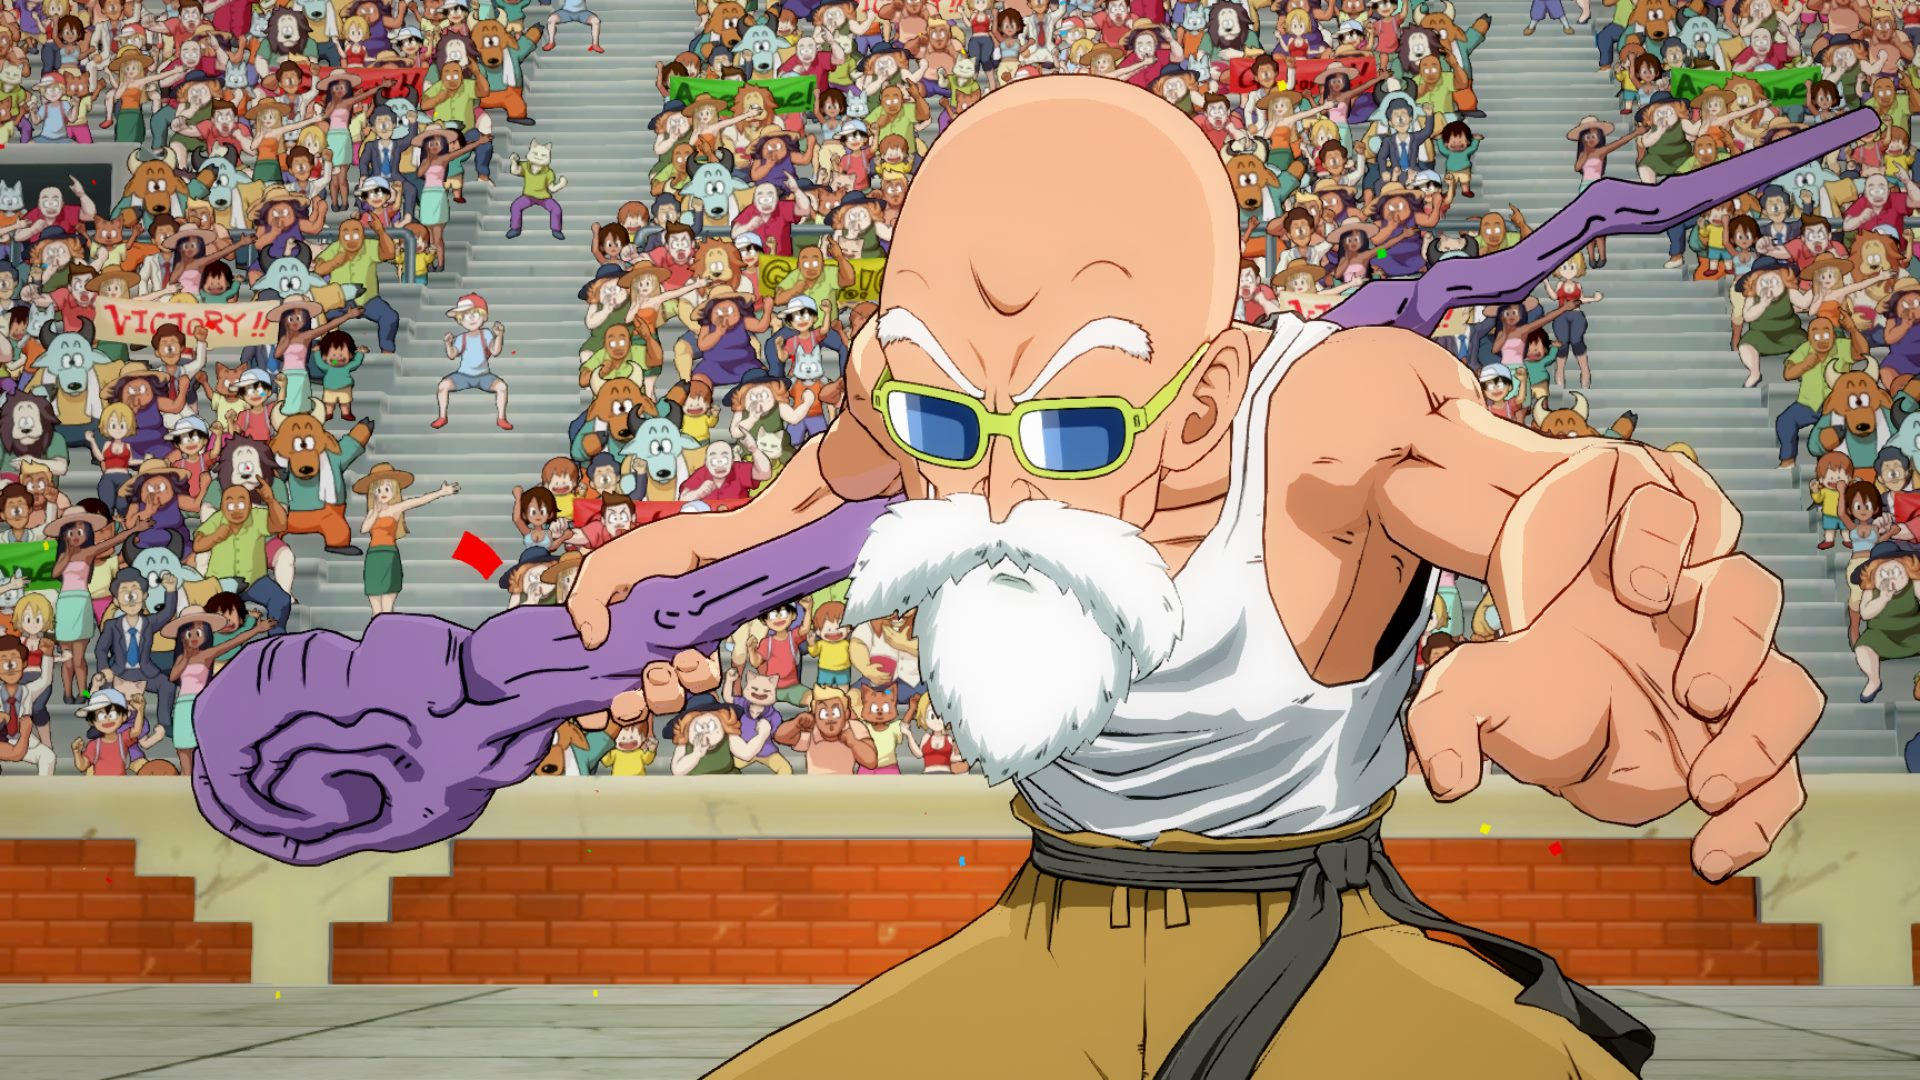 A new Master Roshi trailer for Dragon Ball FighterZ shows more gameplay